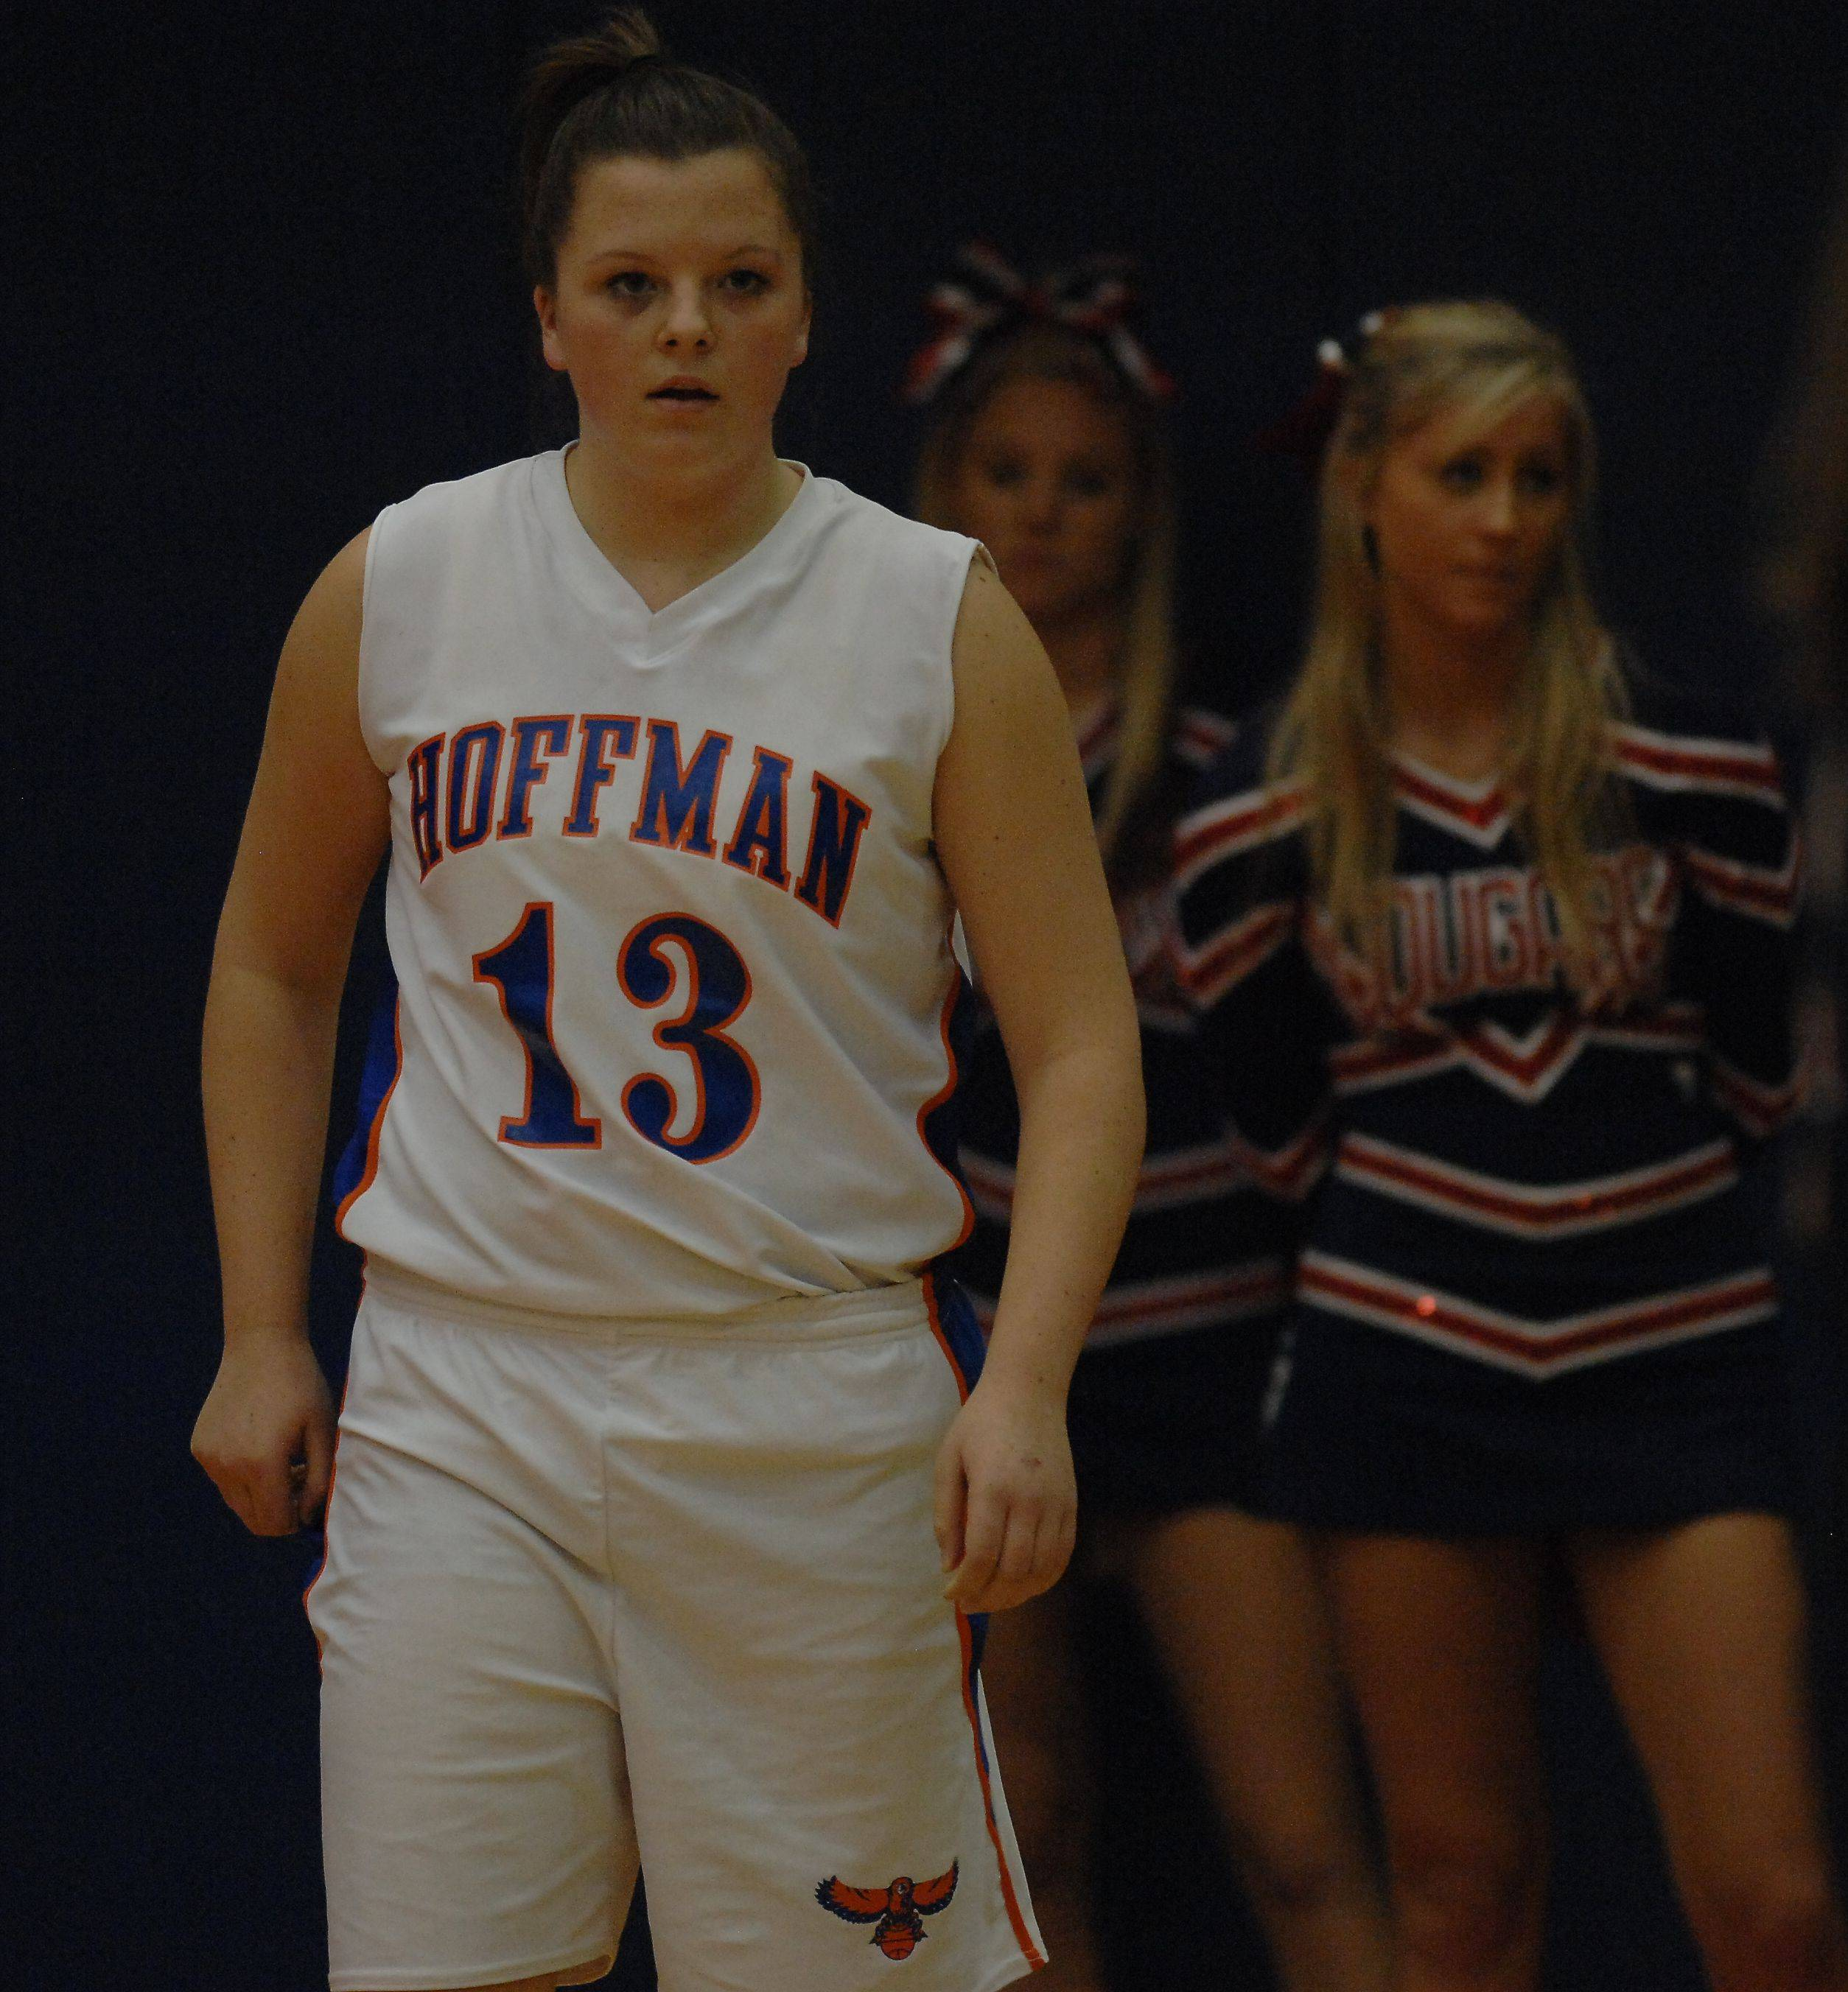 Images from the Conant vs Hoffman Estates girls basketball game in Hoffman Estates on Friday, December 10th.